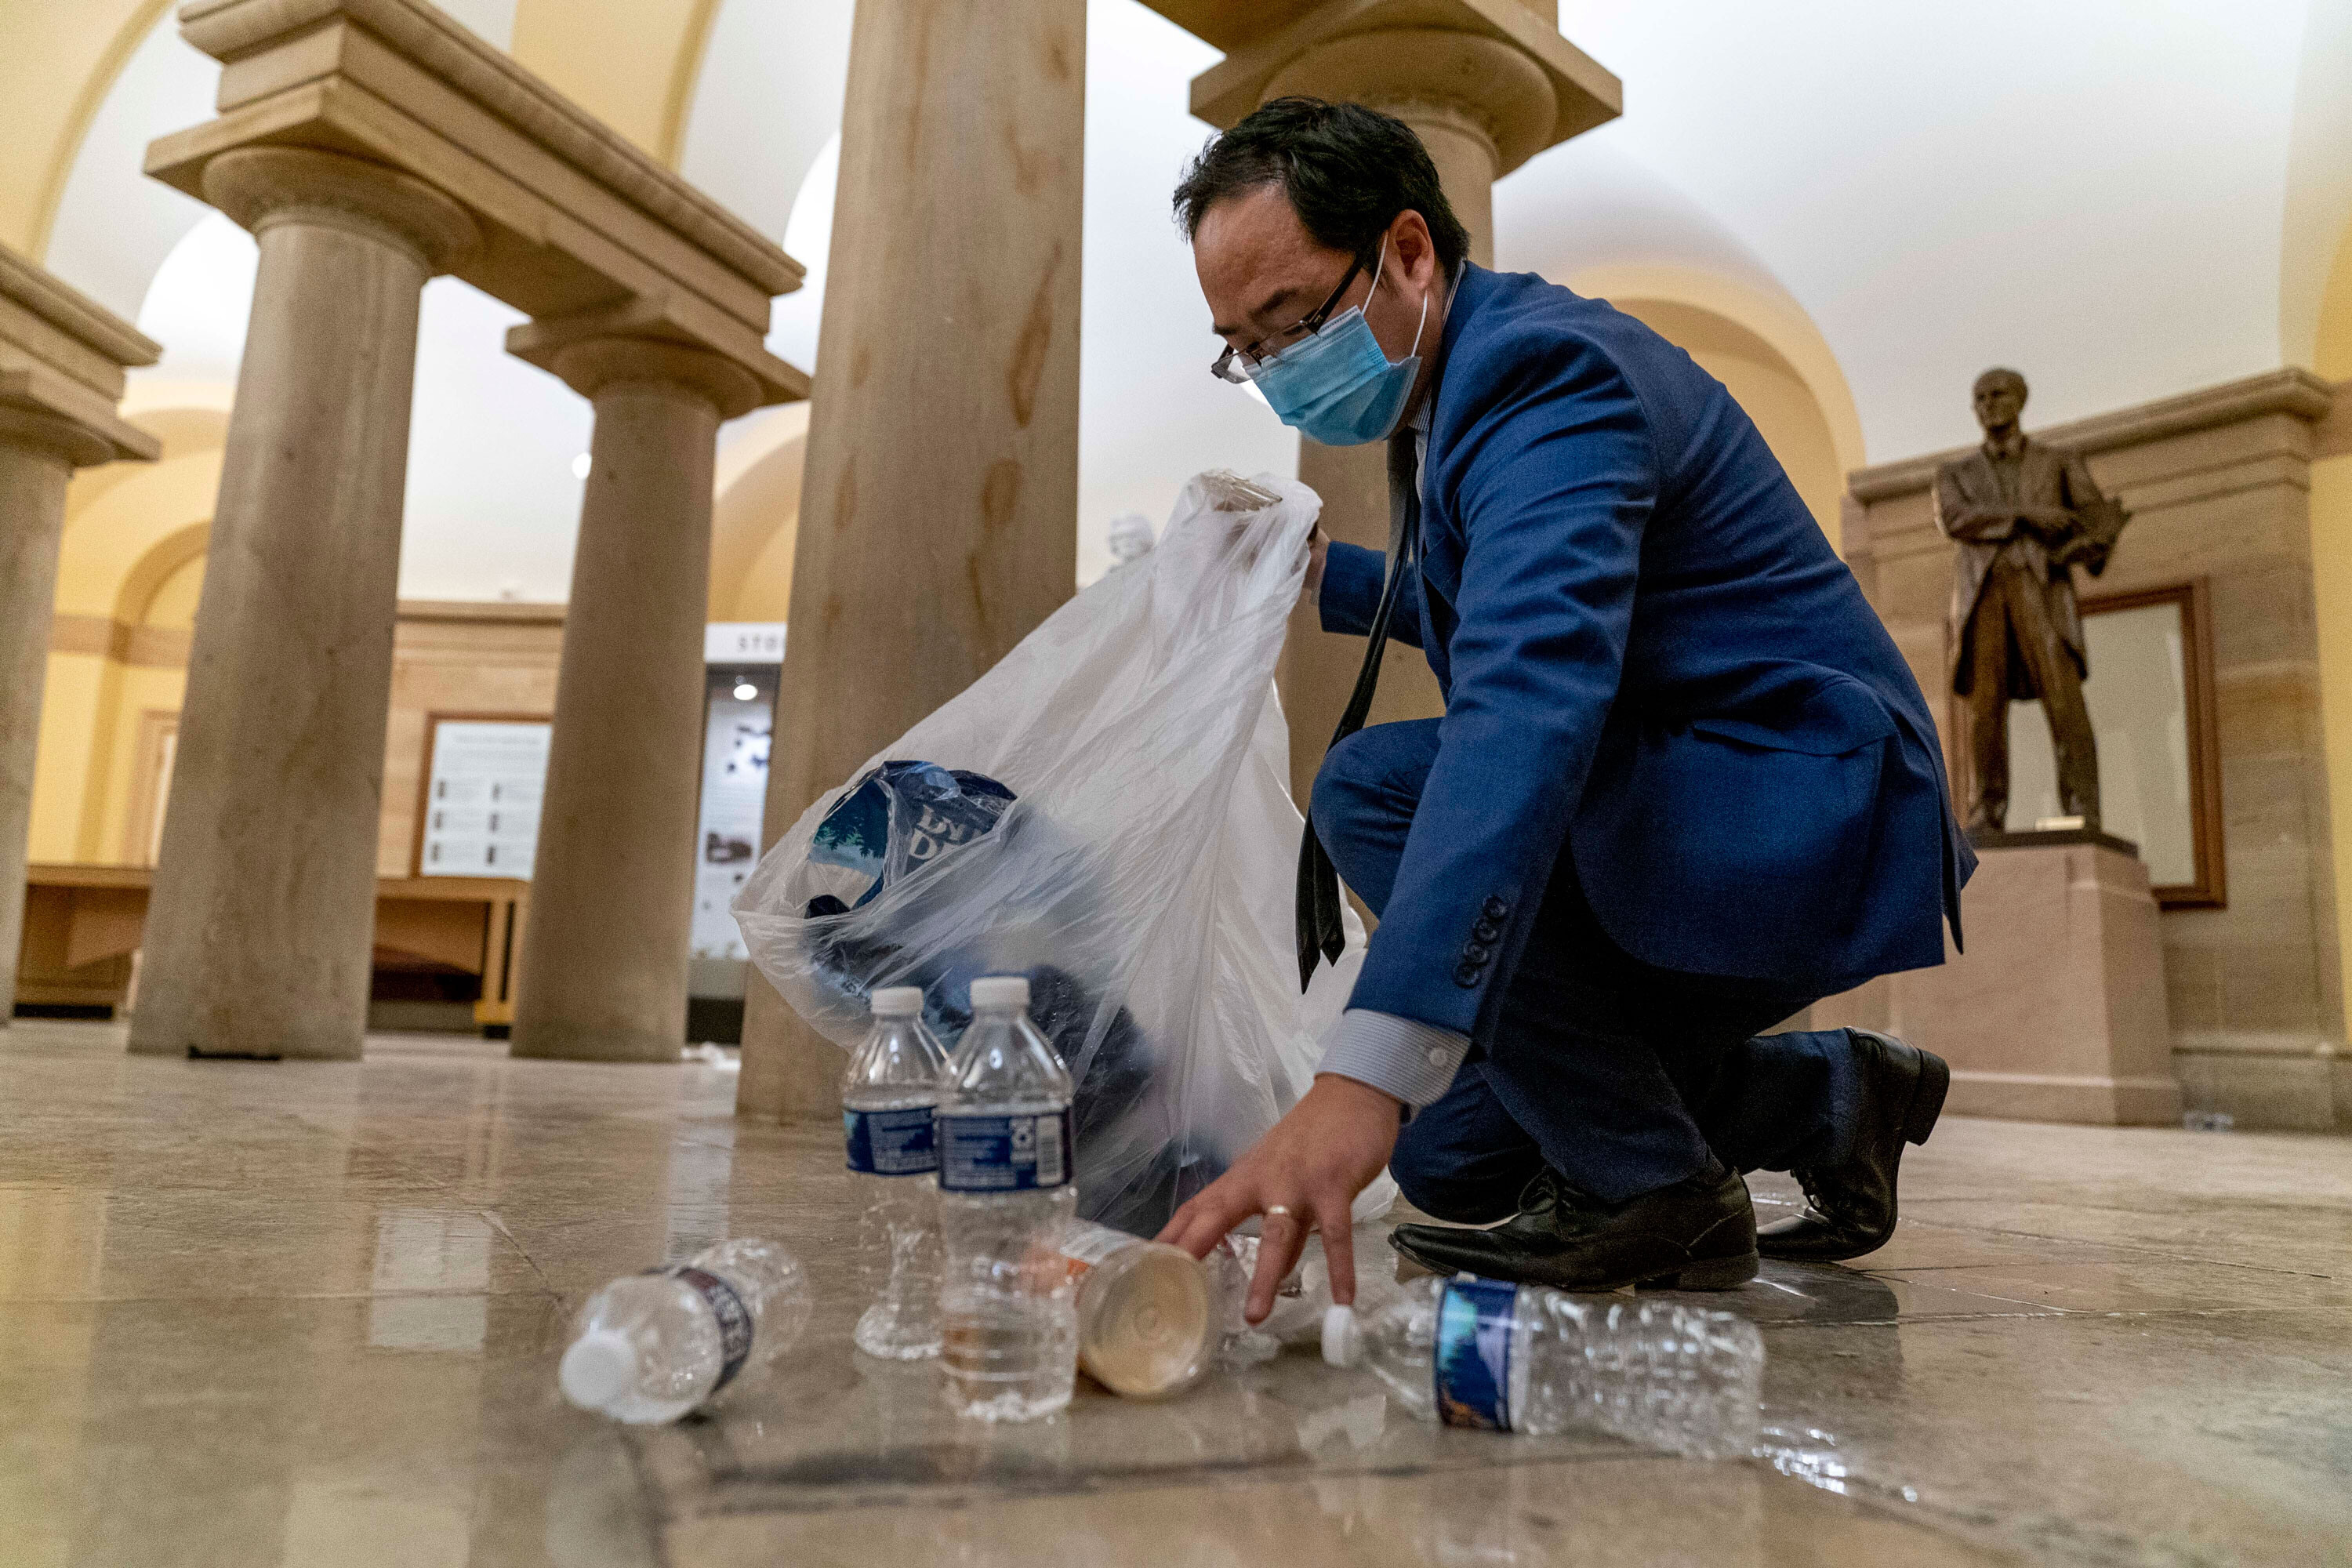 Lawmaker donates suit he wore to clean up Capitol riot to Smithsonian, 6 months after deadly insurrection